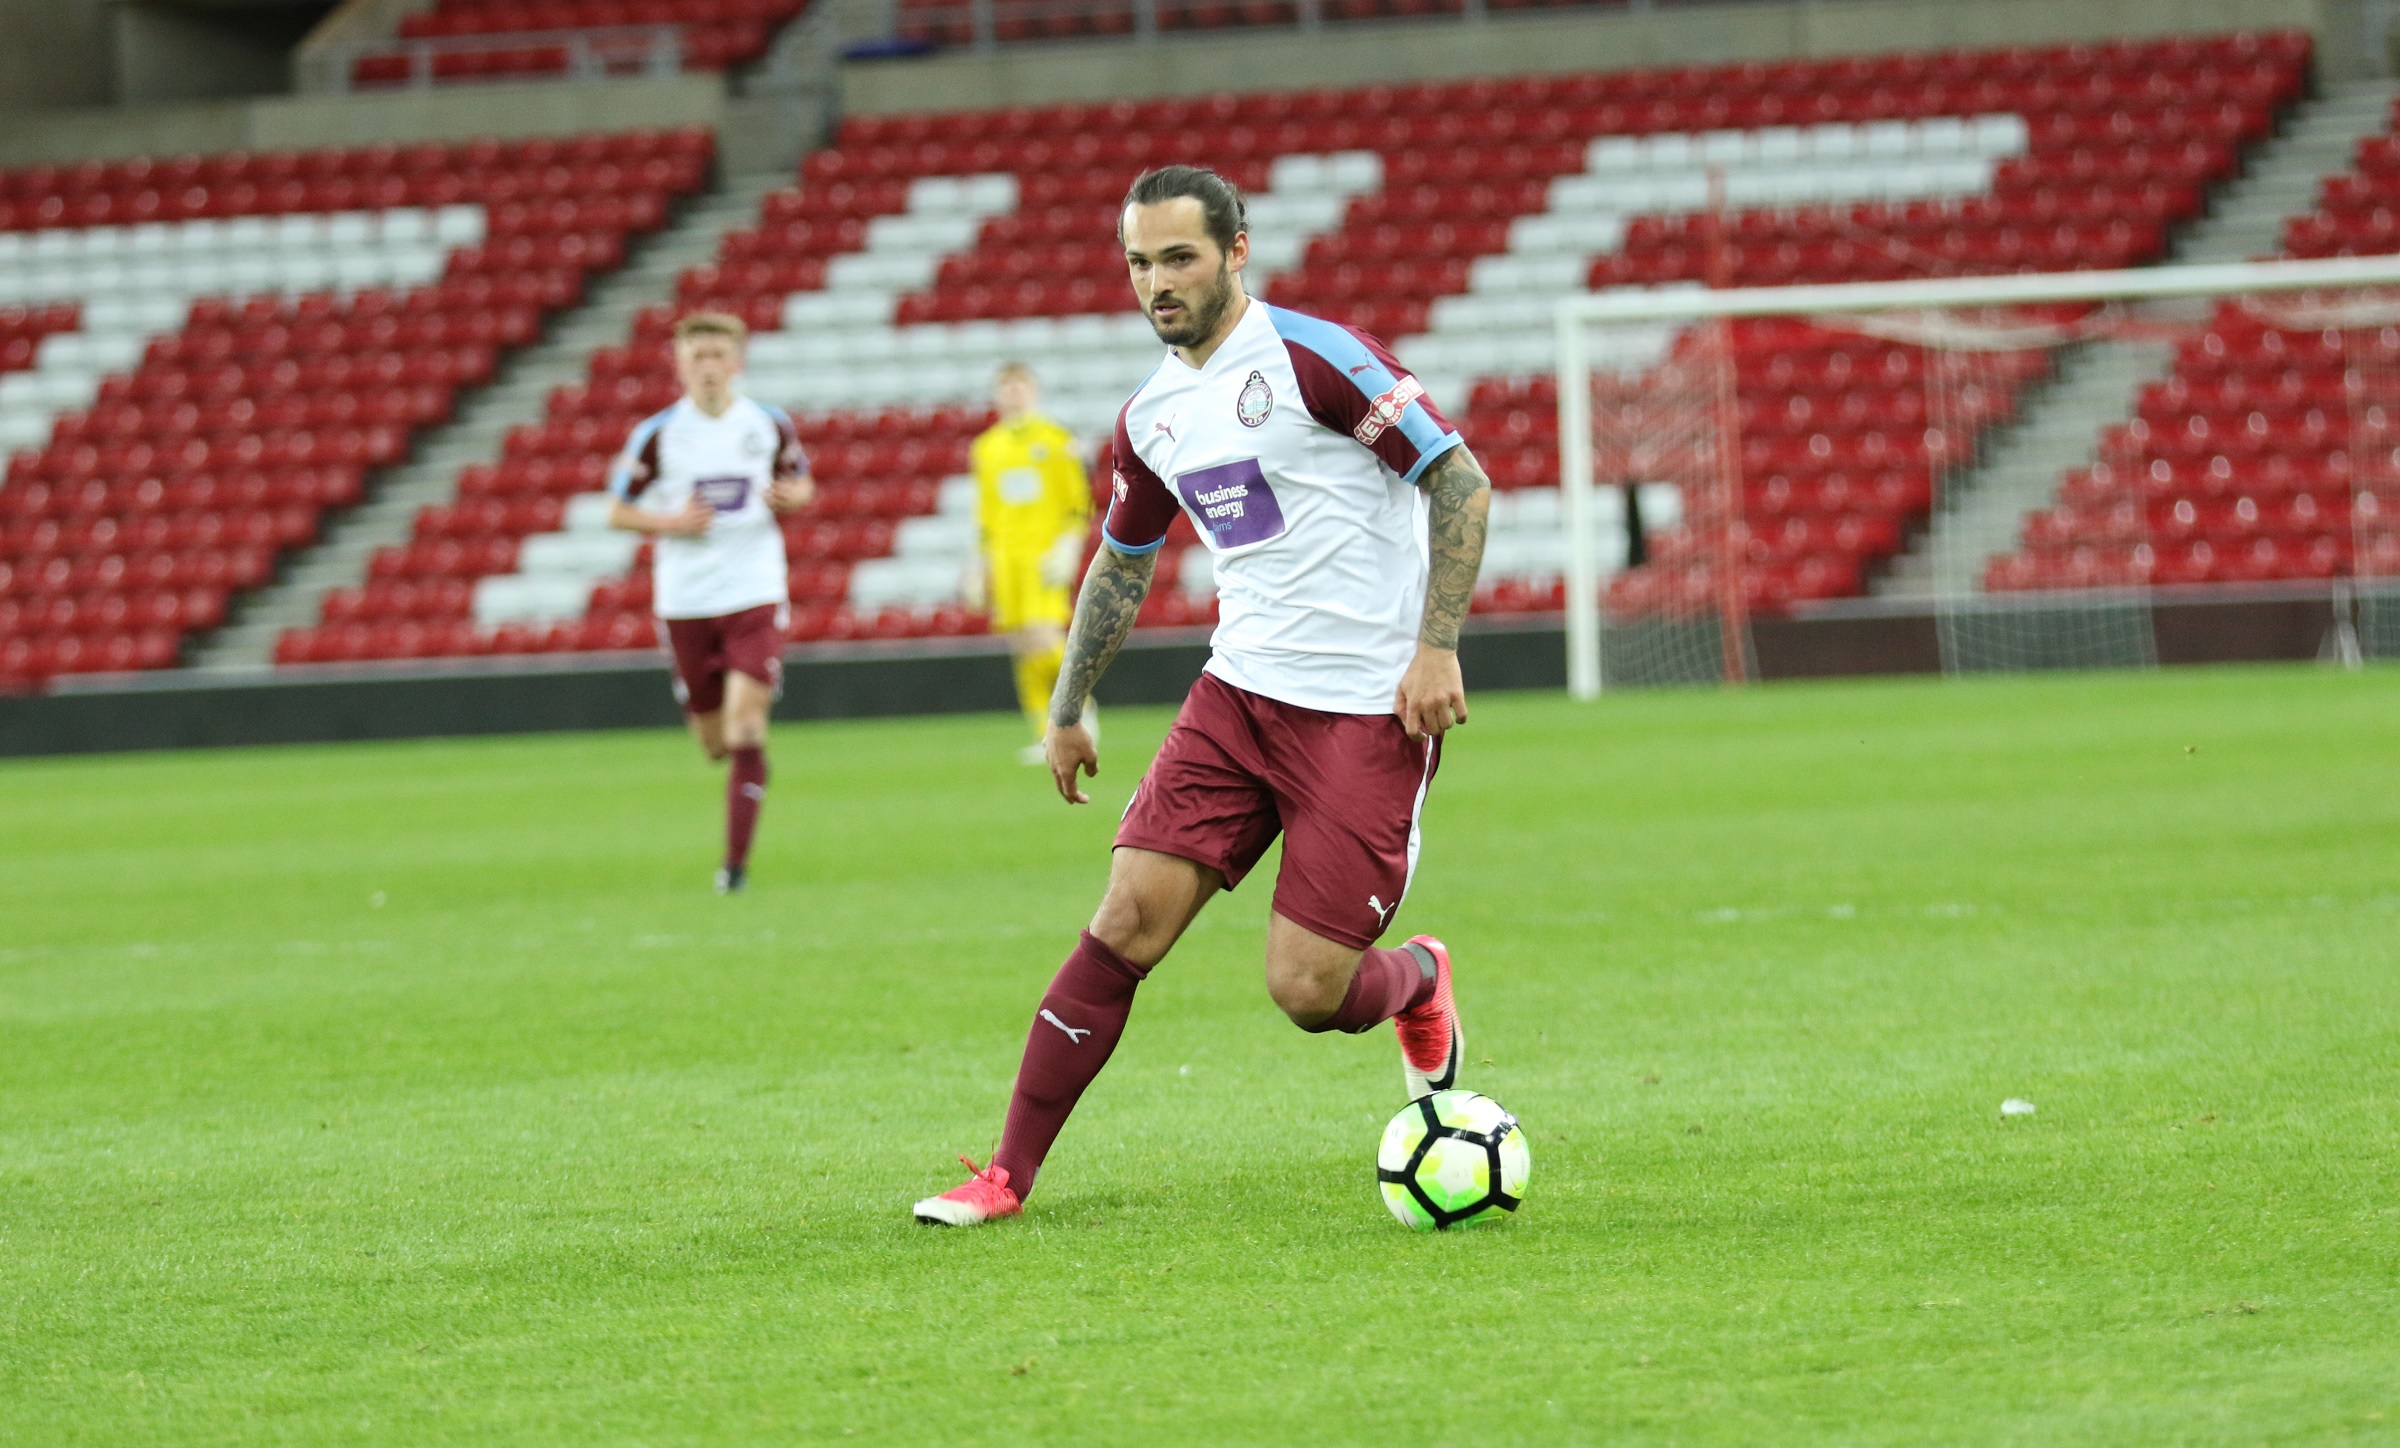 Anthony Callaghan opts to leave club